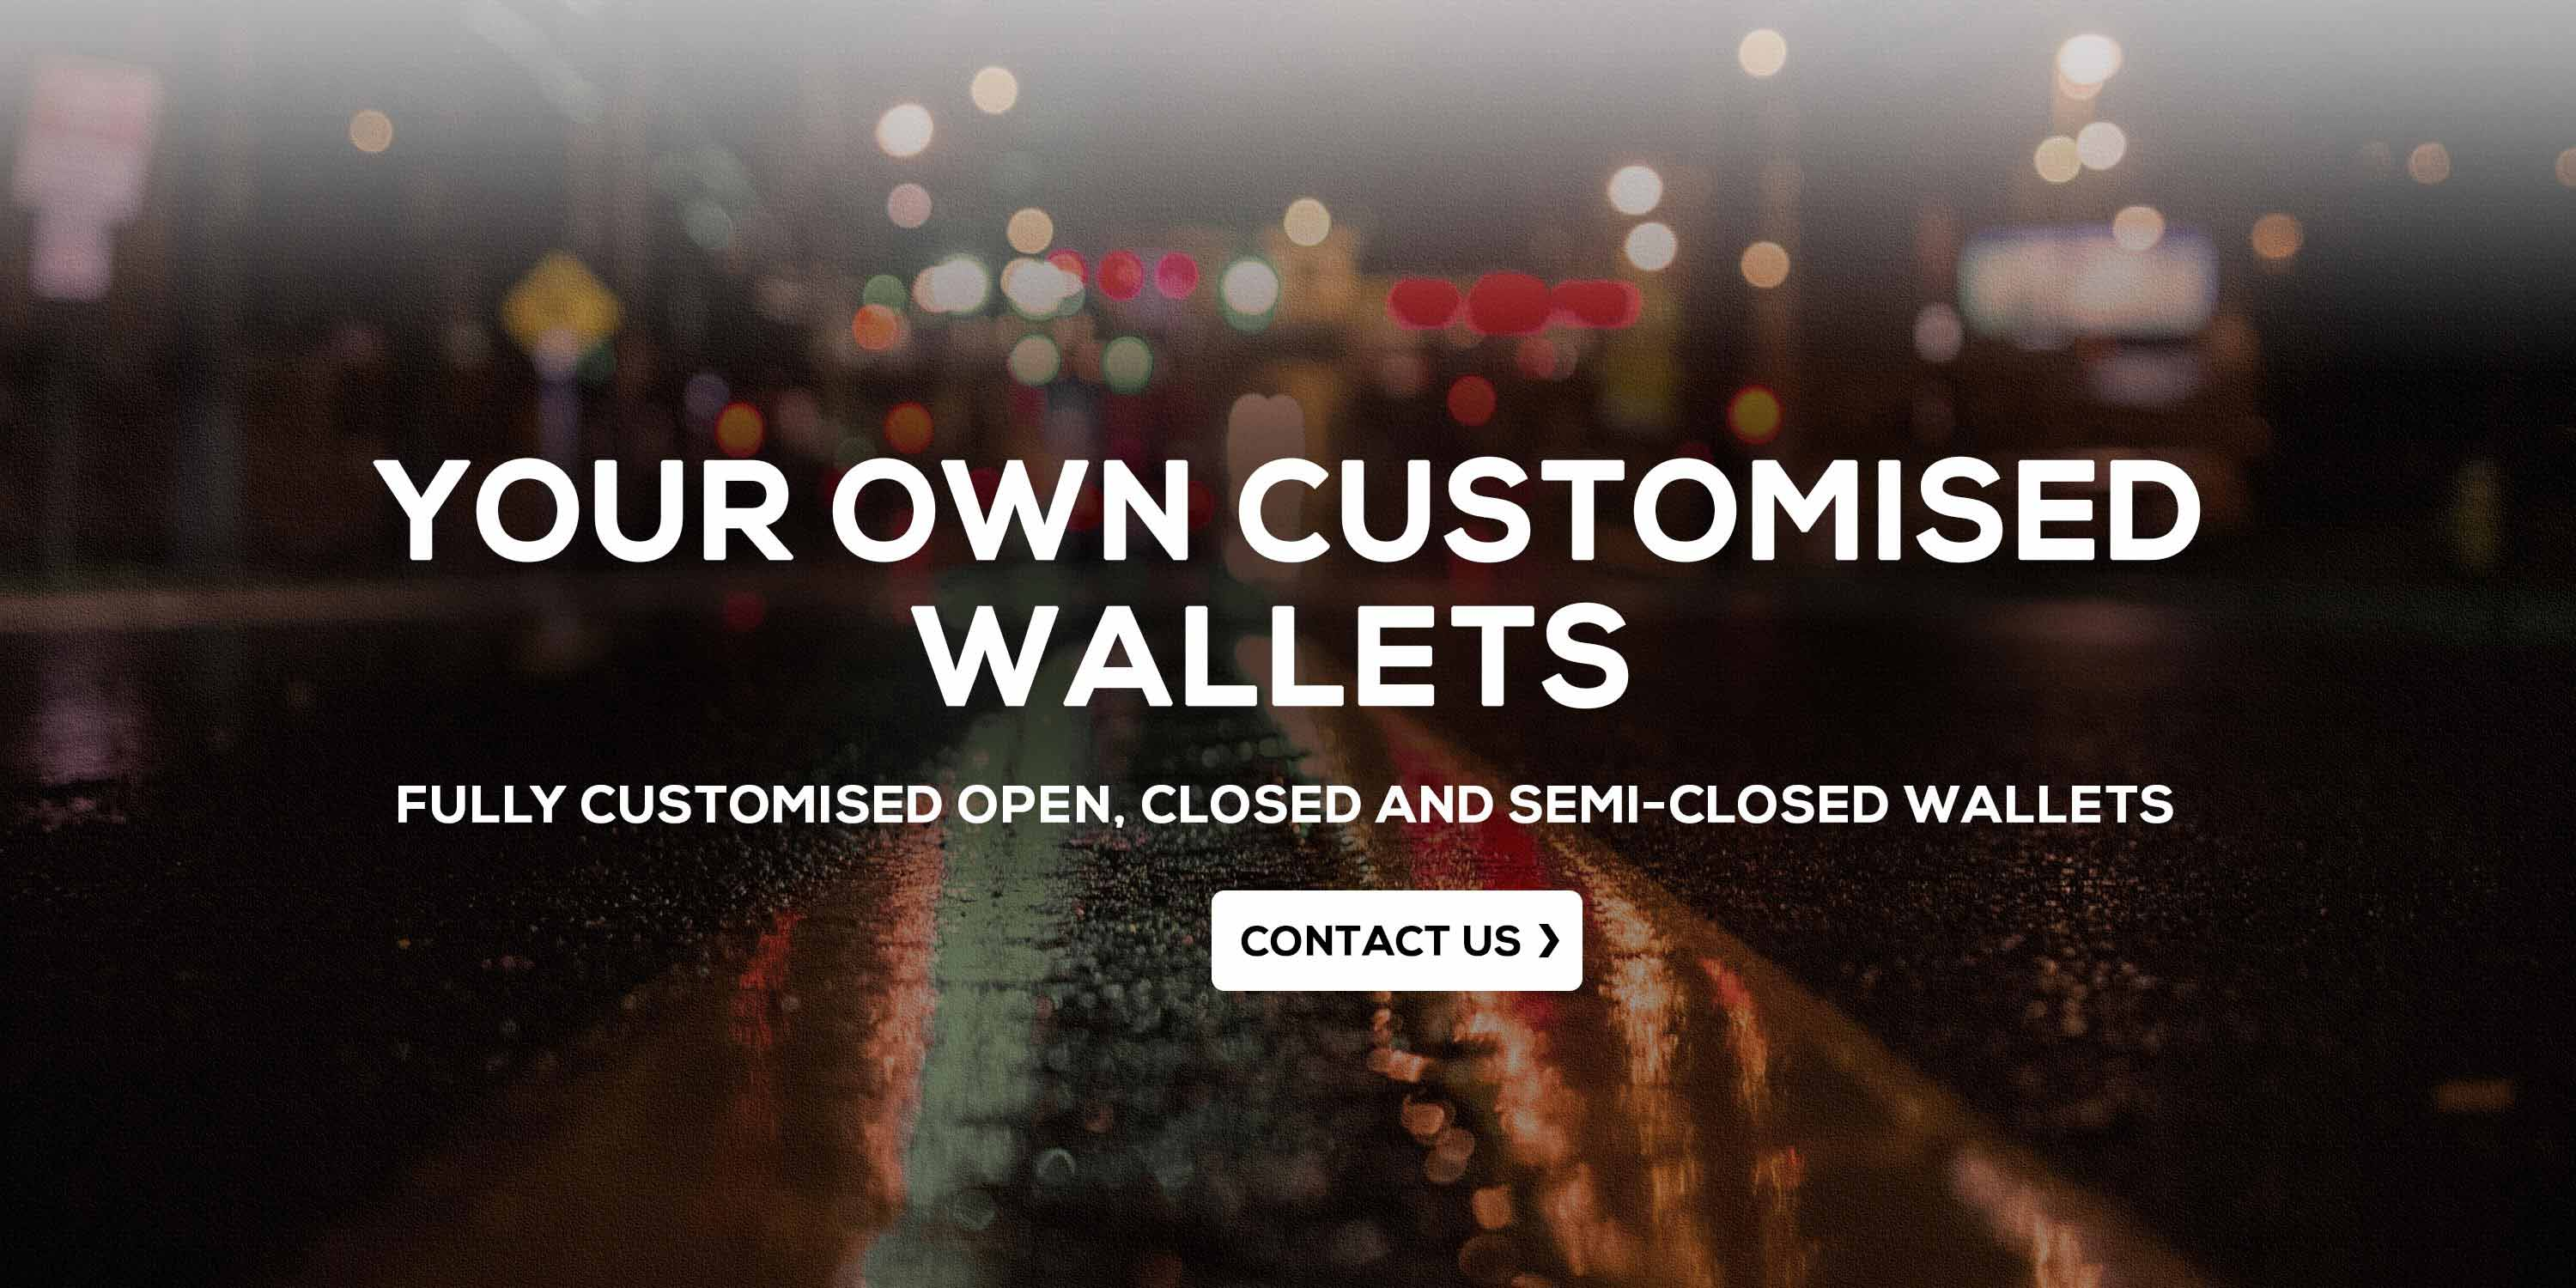 Your Own Customised Wallets